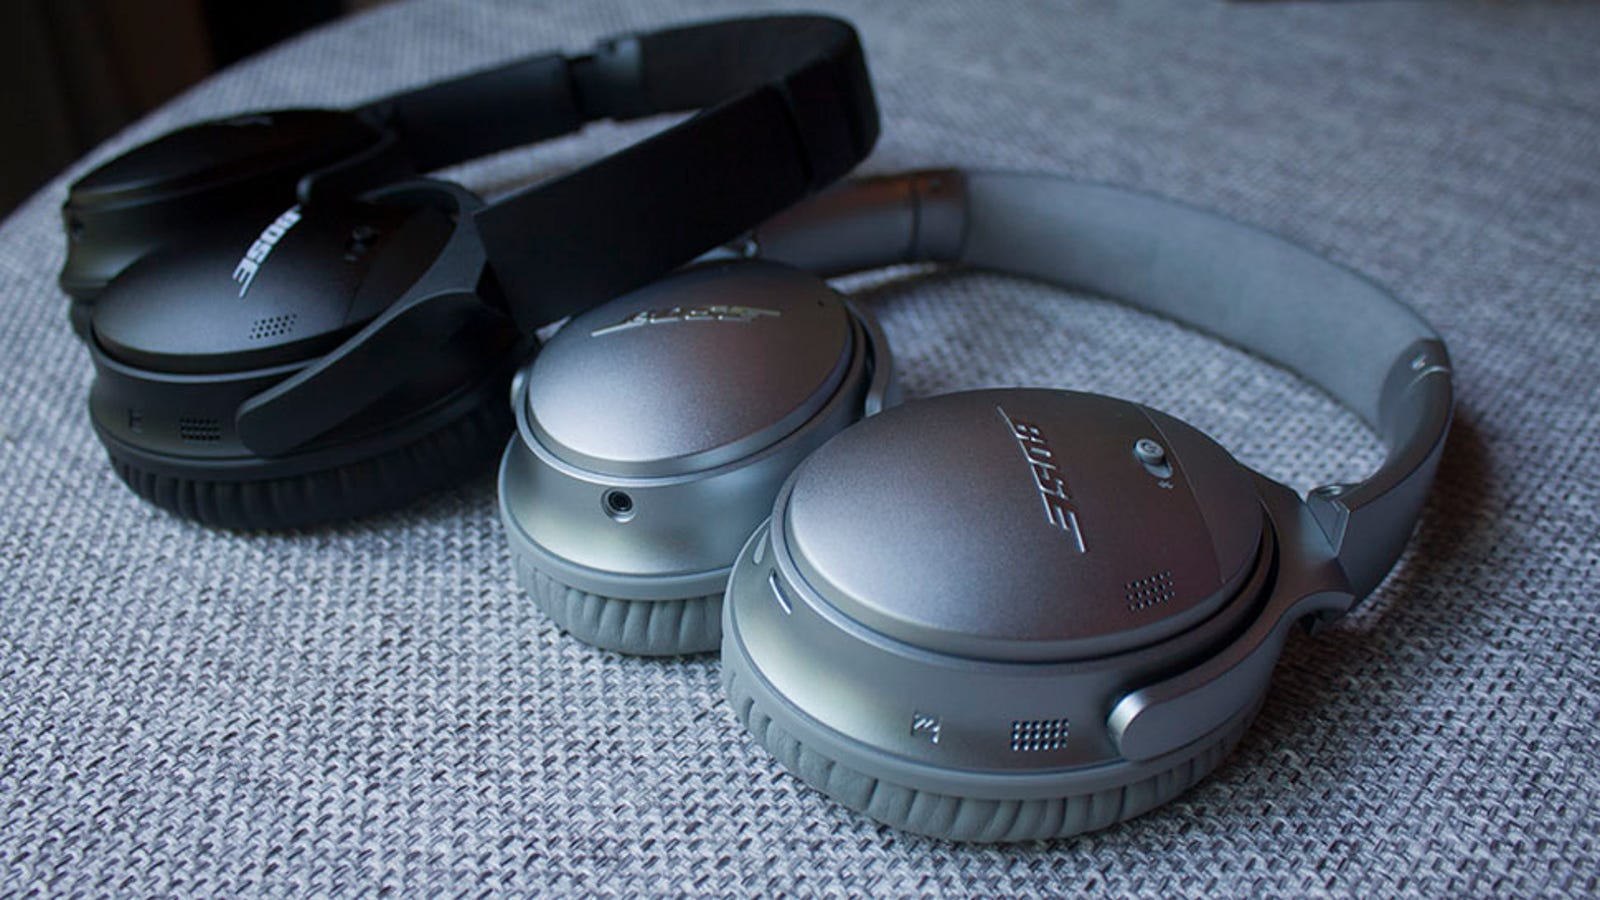 pioneer dj headphones wireless - Bose's Best Noise-Canceling Headphones Finally Go Wireless